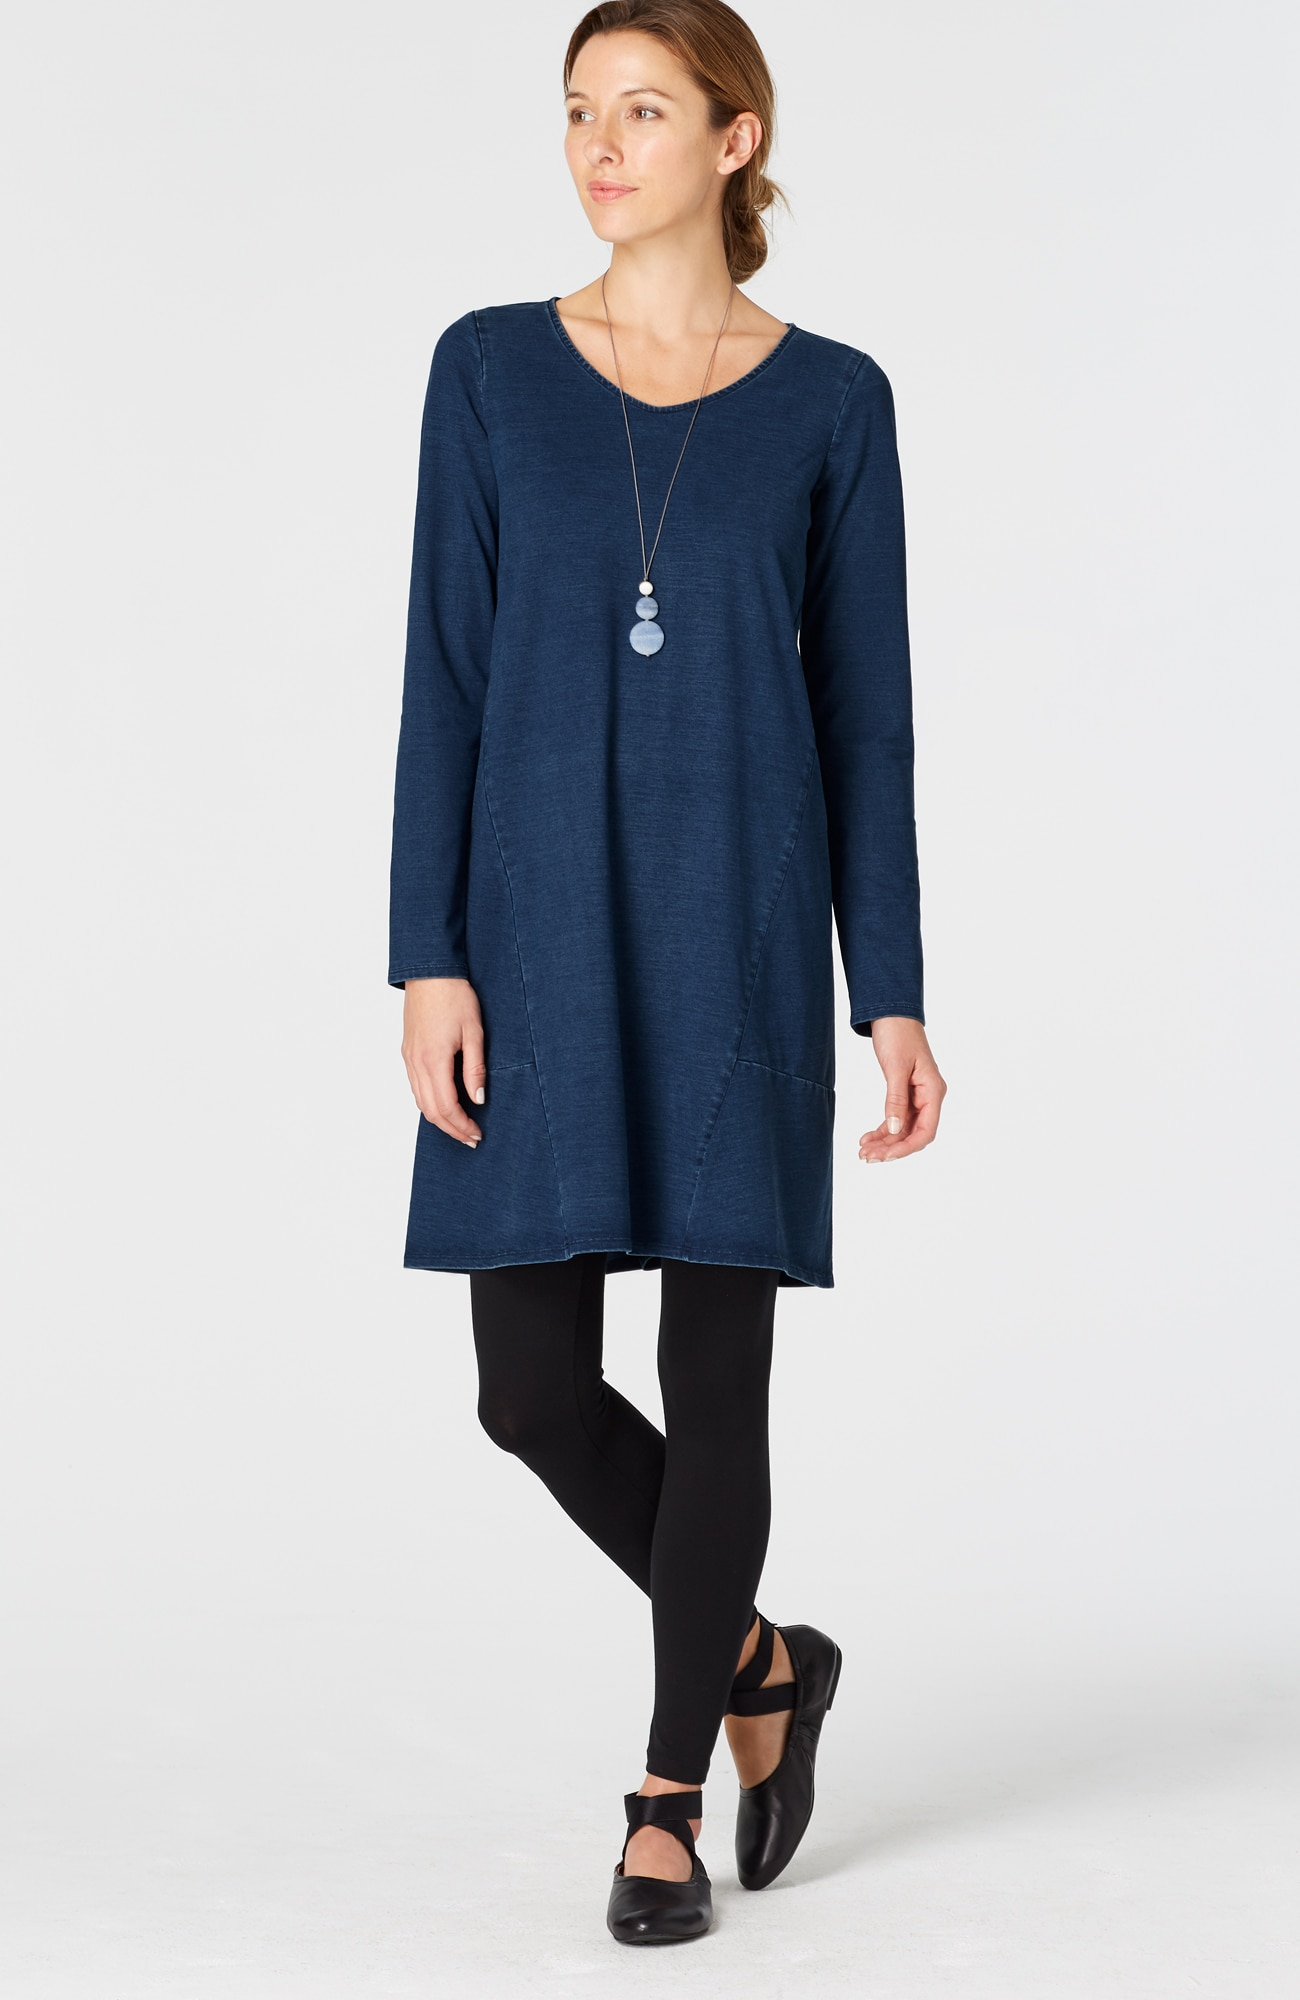 Pure Jill indigo knit seamed dress